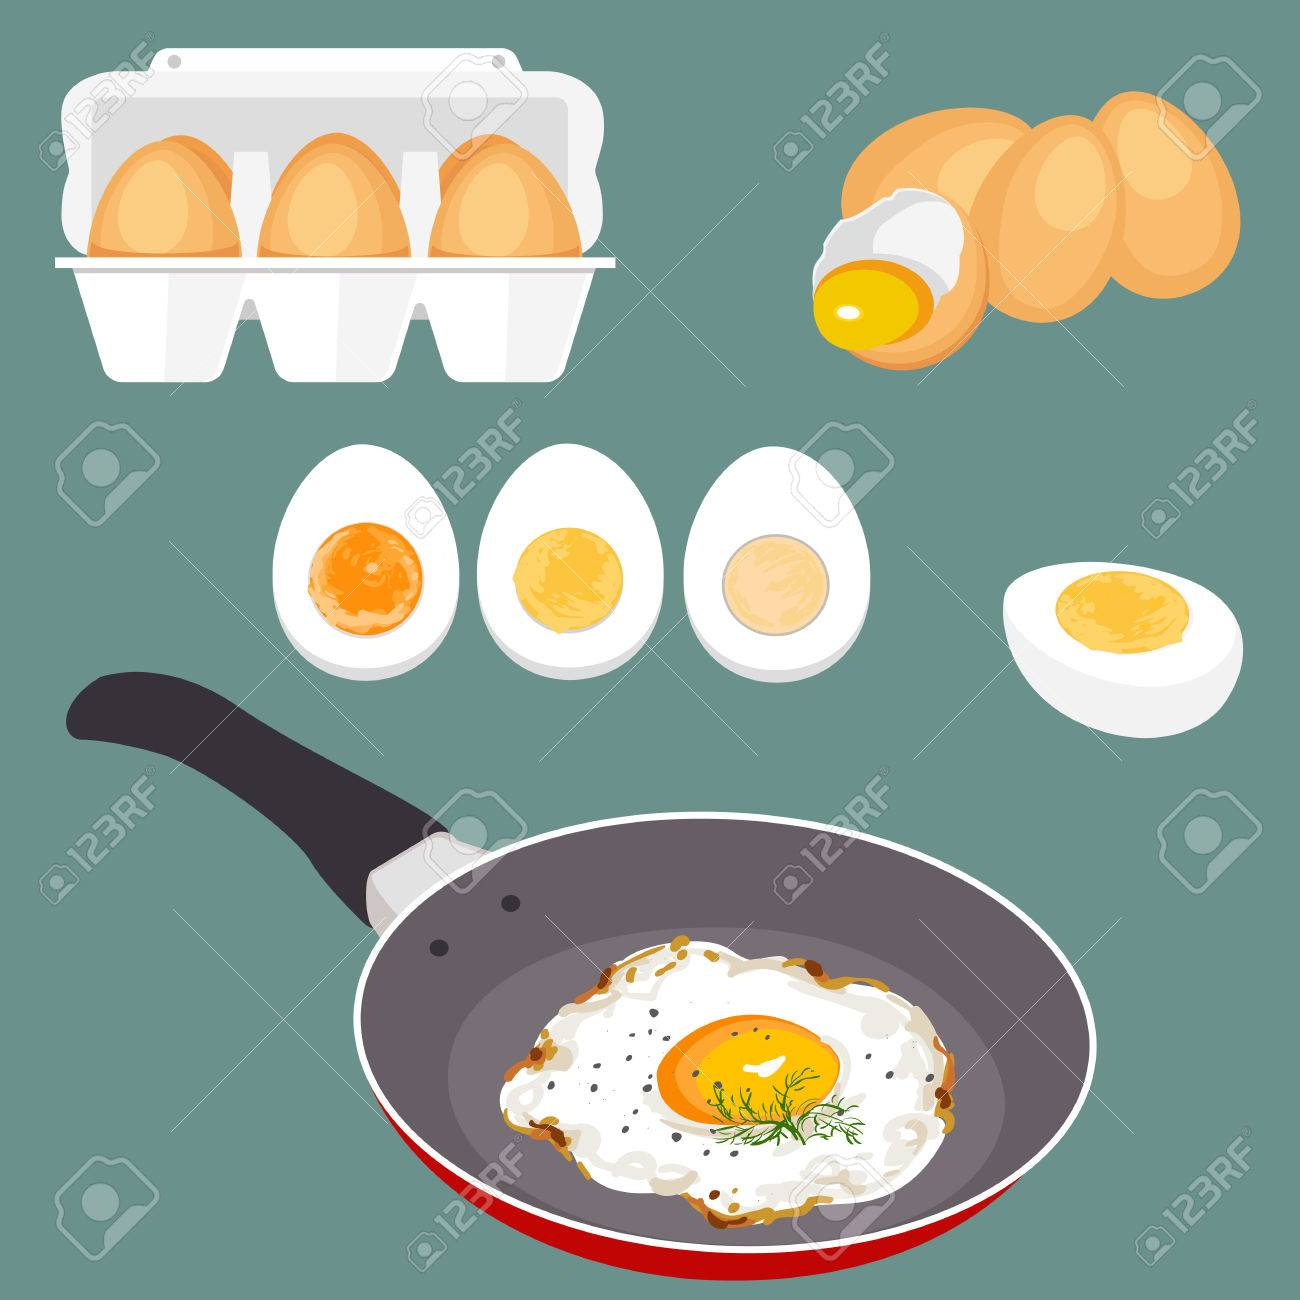 Colorful vector illustration of eggs. Set of cooking and fresh eggs. Eggshell and proteins. Healthy organic food. Diet product with protein. Raw broken cartoon eggs with yolks. - 58069648